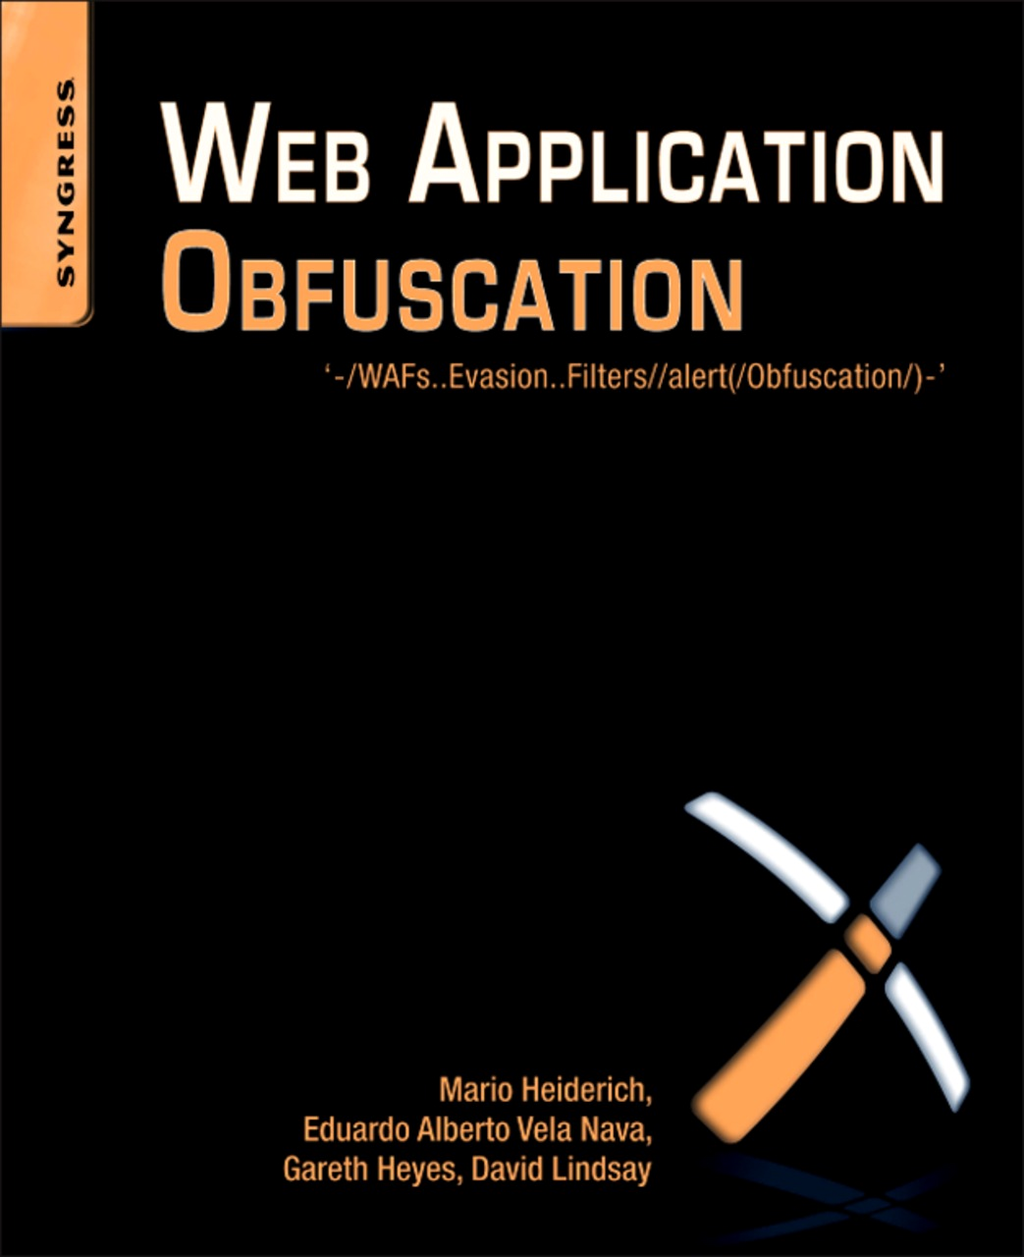 Web Application Obfuscation '-/WAFs..Evasion..Filters//alert(/Obfuscation/)-'